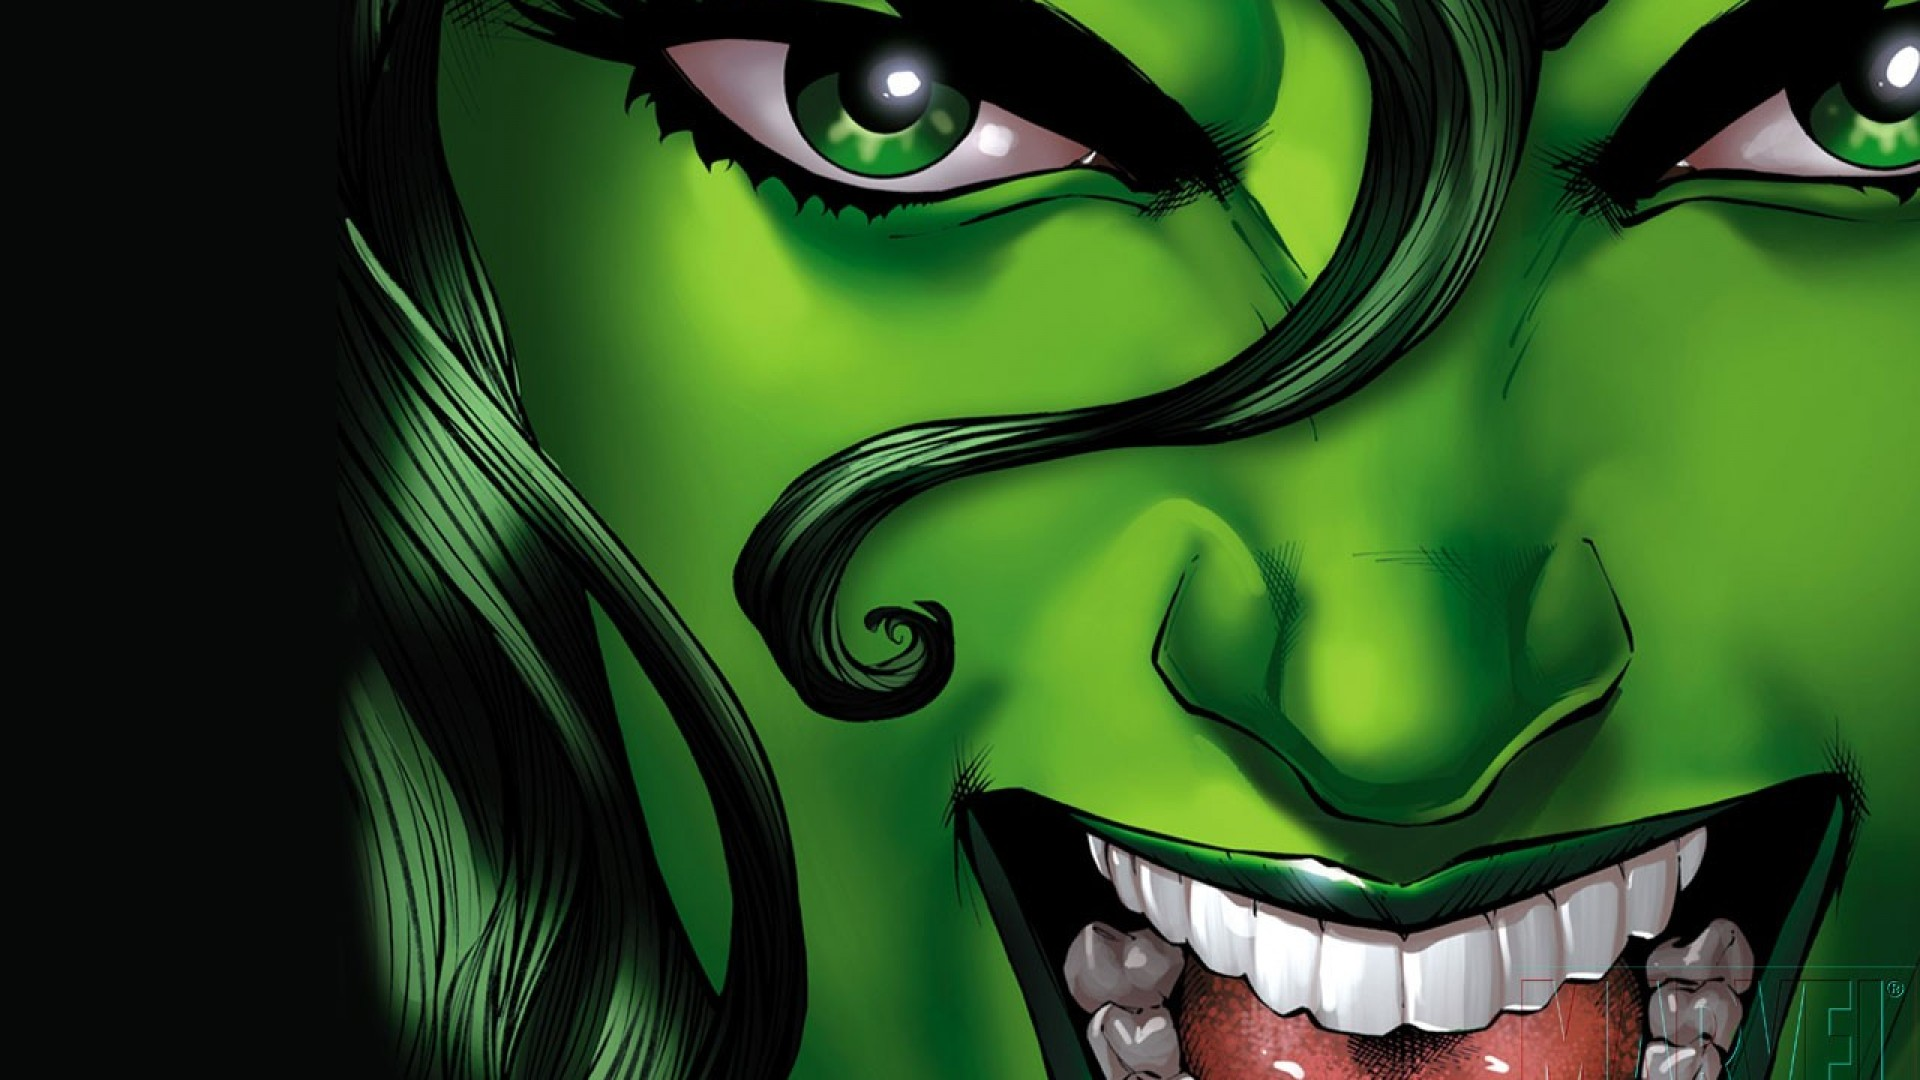 she-hulk full hd wallpaper and background image | 1920x1080 | id:477833